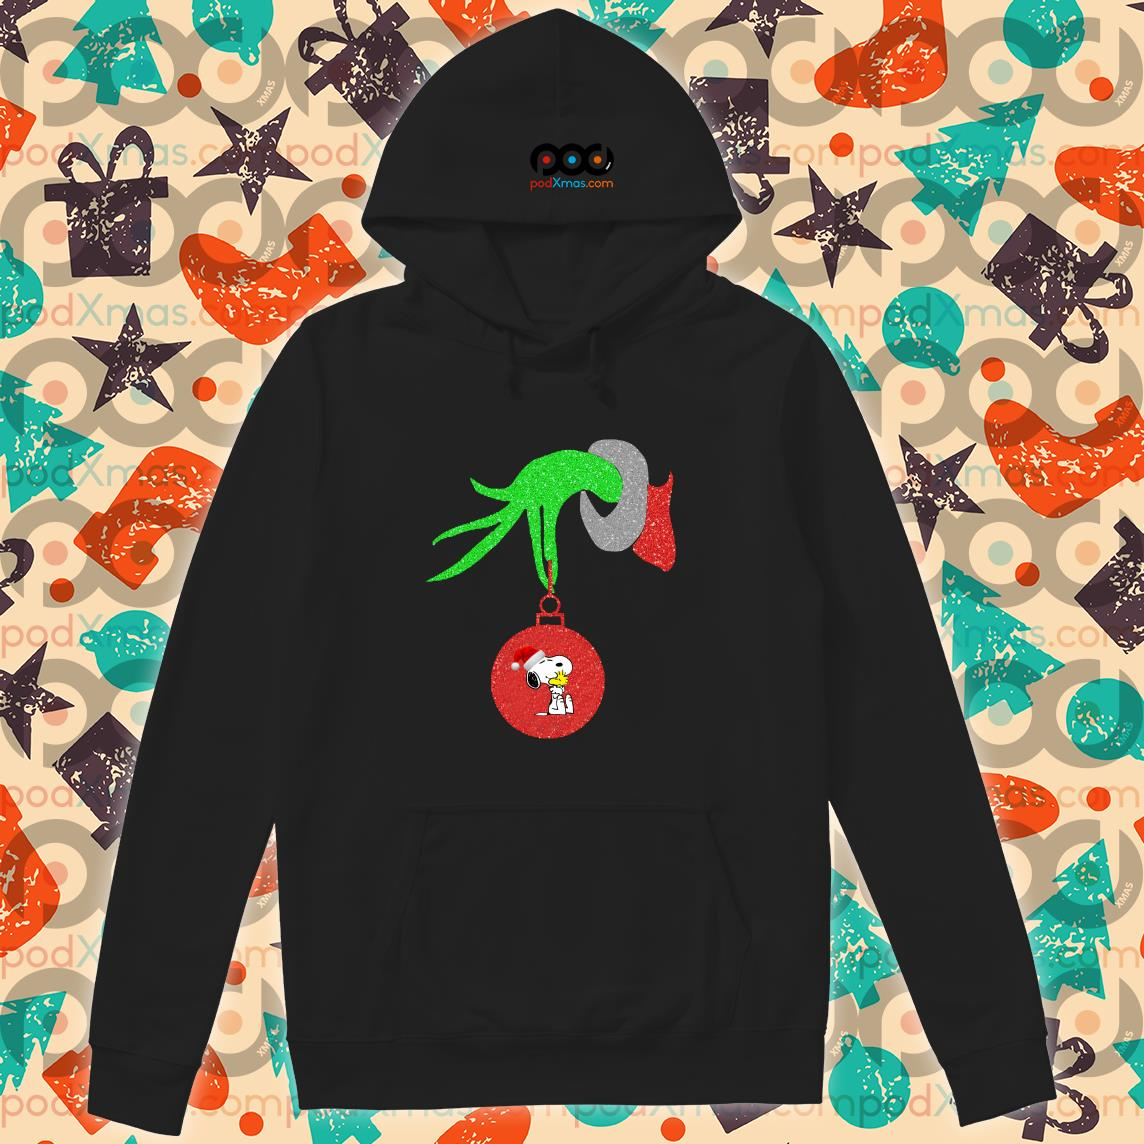 Grinch Hand holding Snoopy hoodie